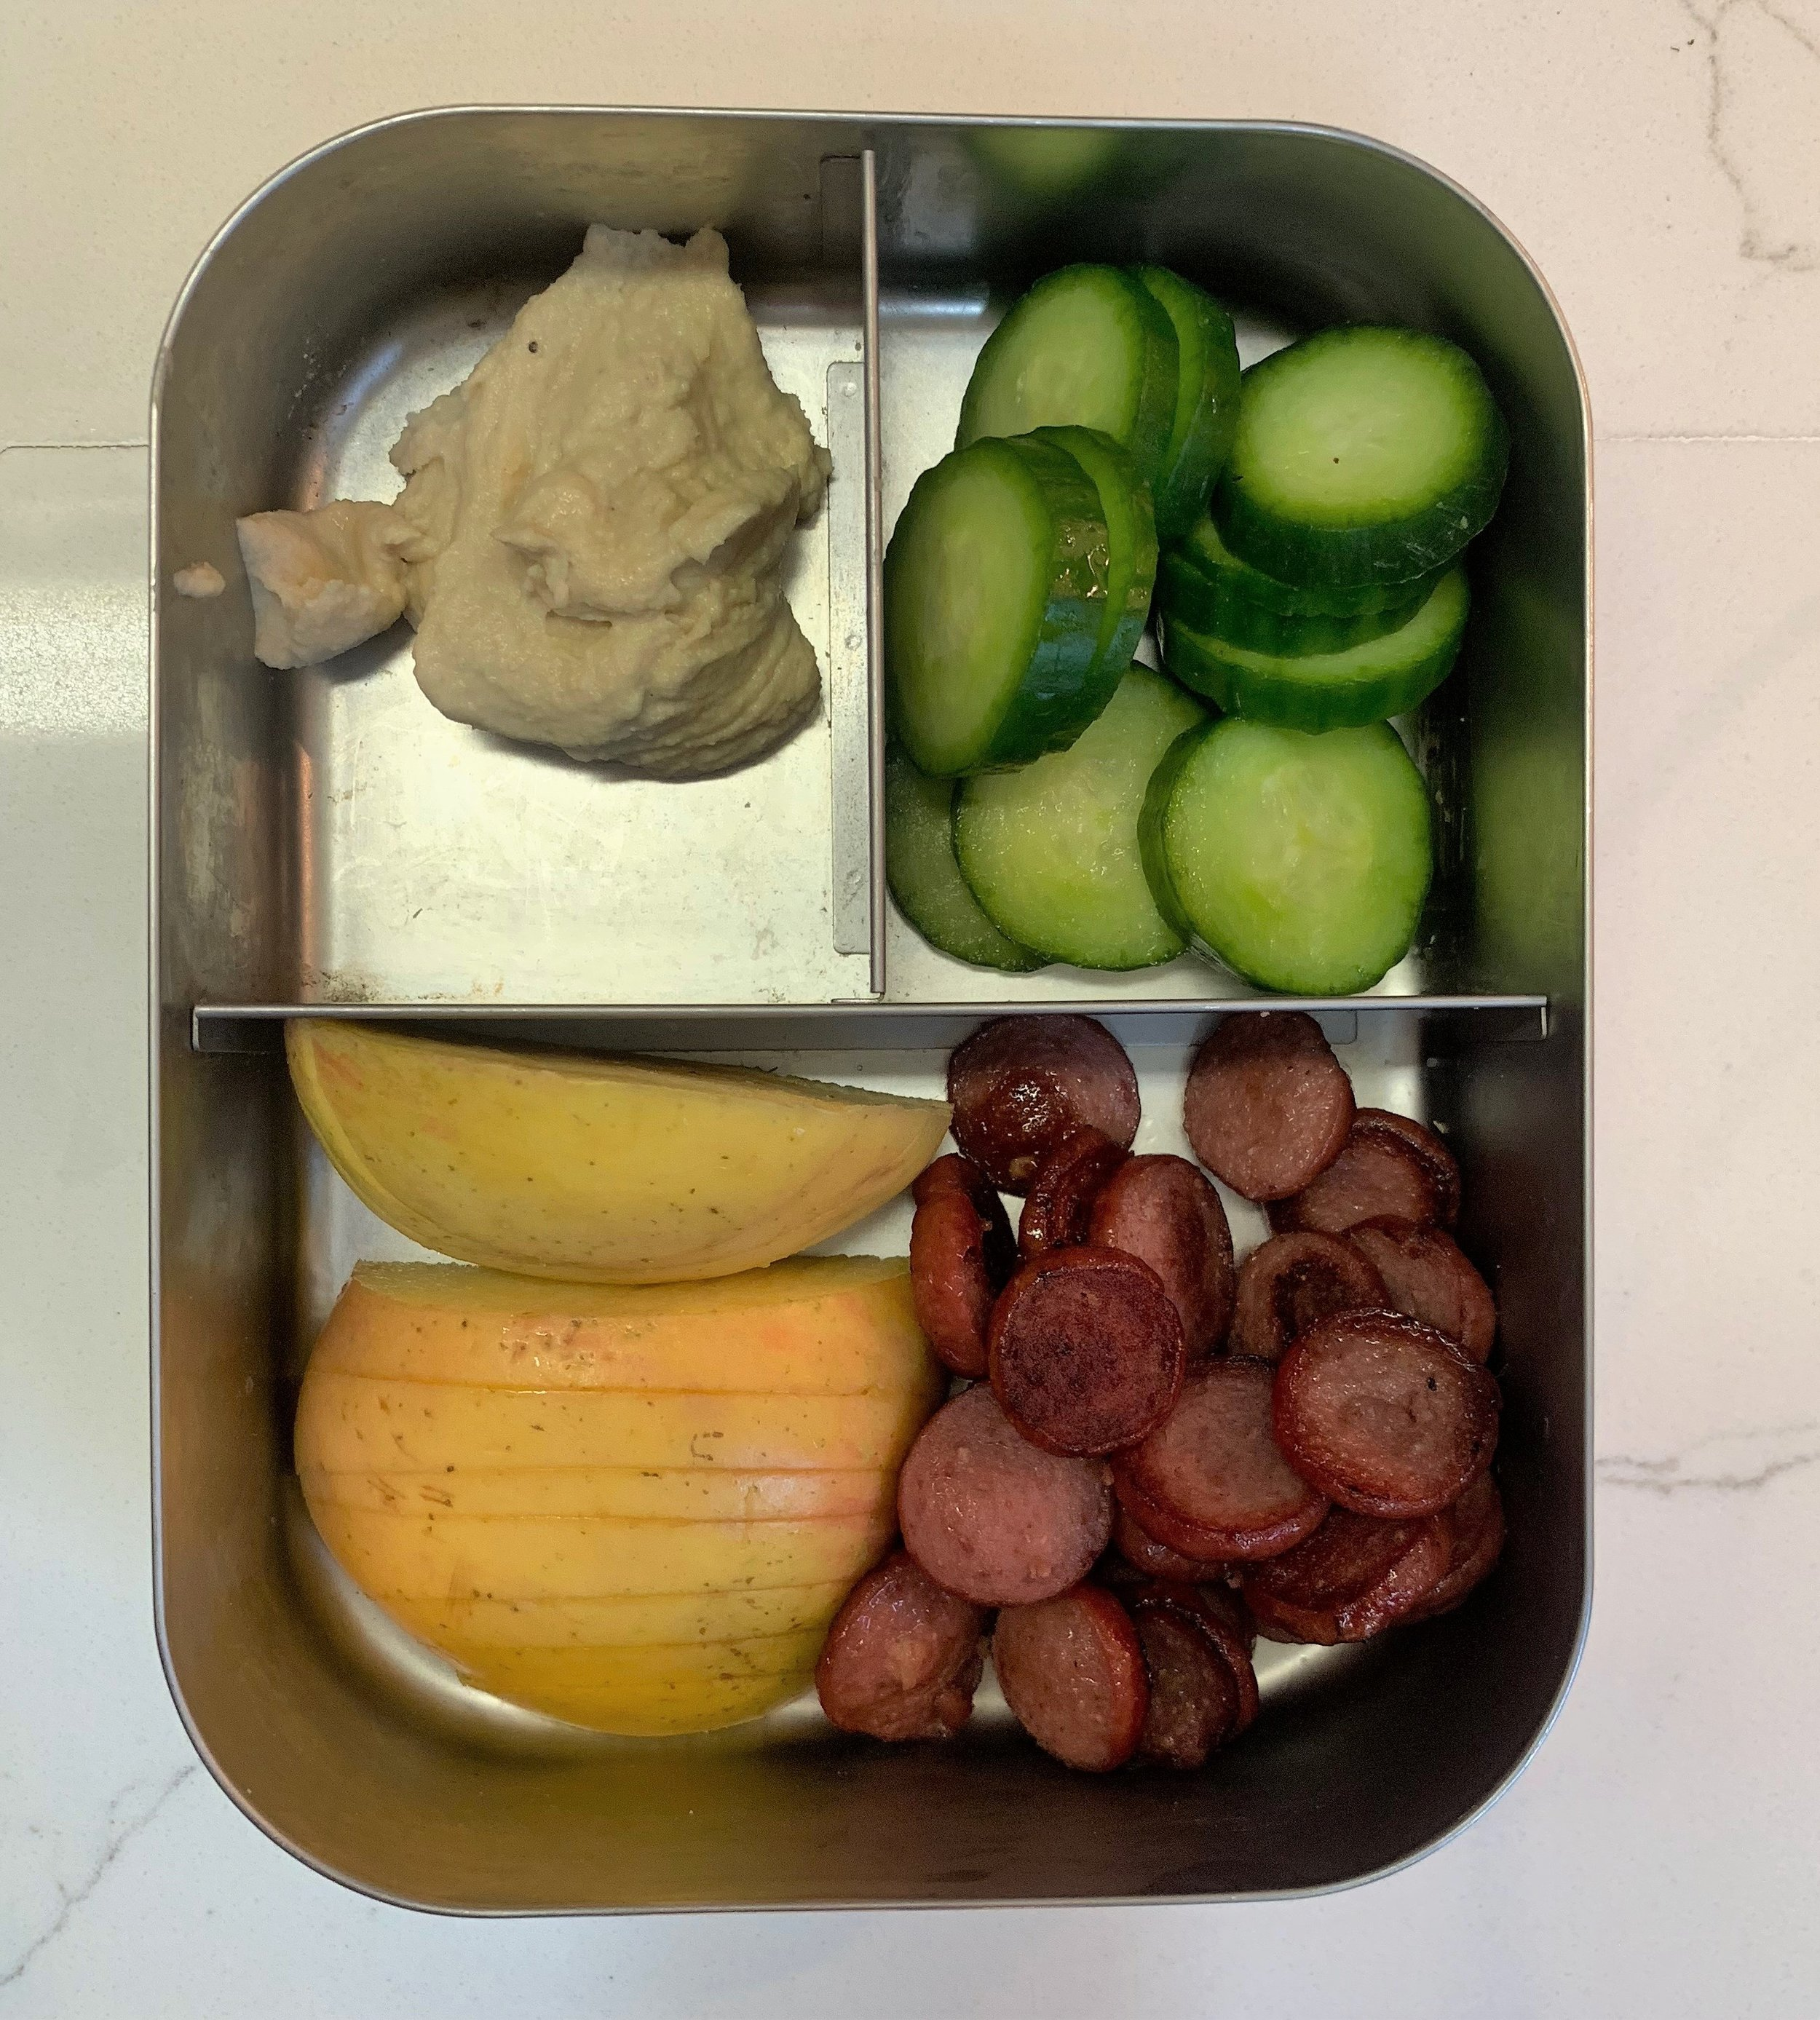 Main section: half and apple and some organic turkey hot dog slices  Top left: hummus  Top right: cucumbers